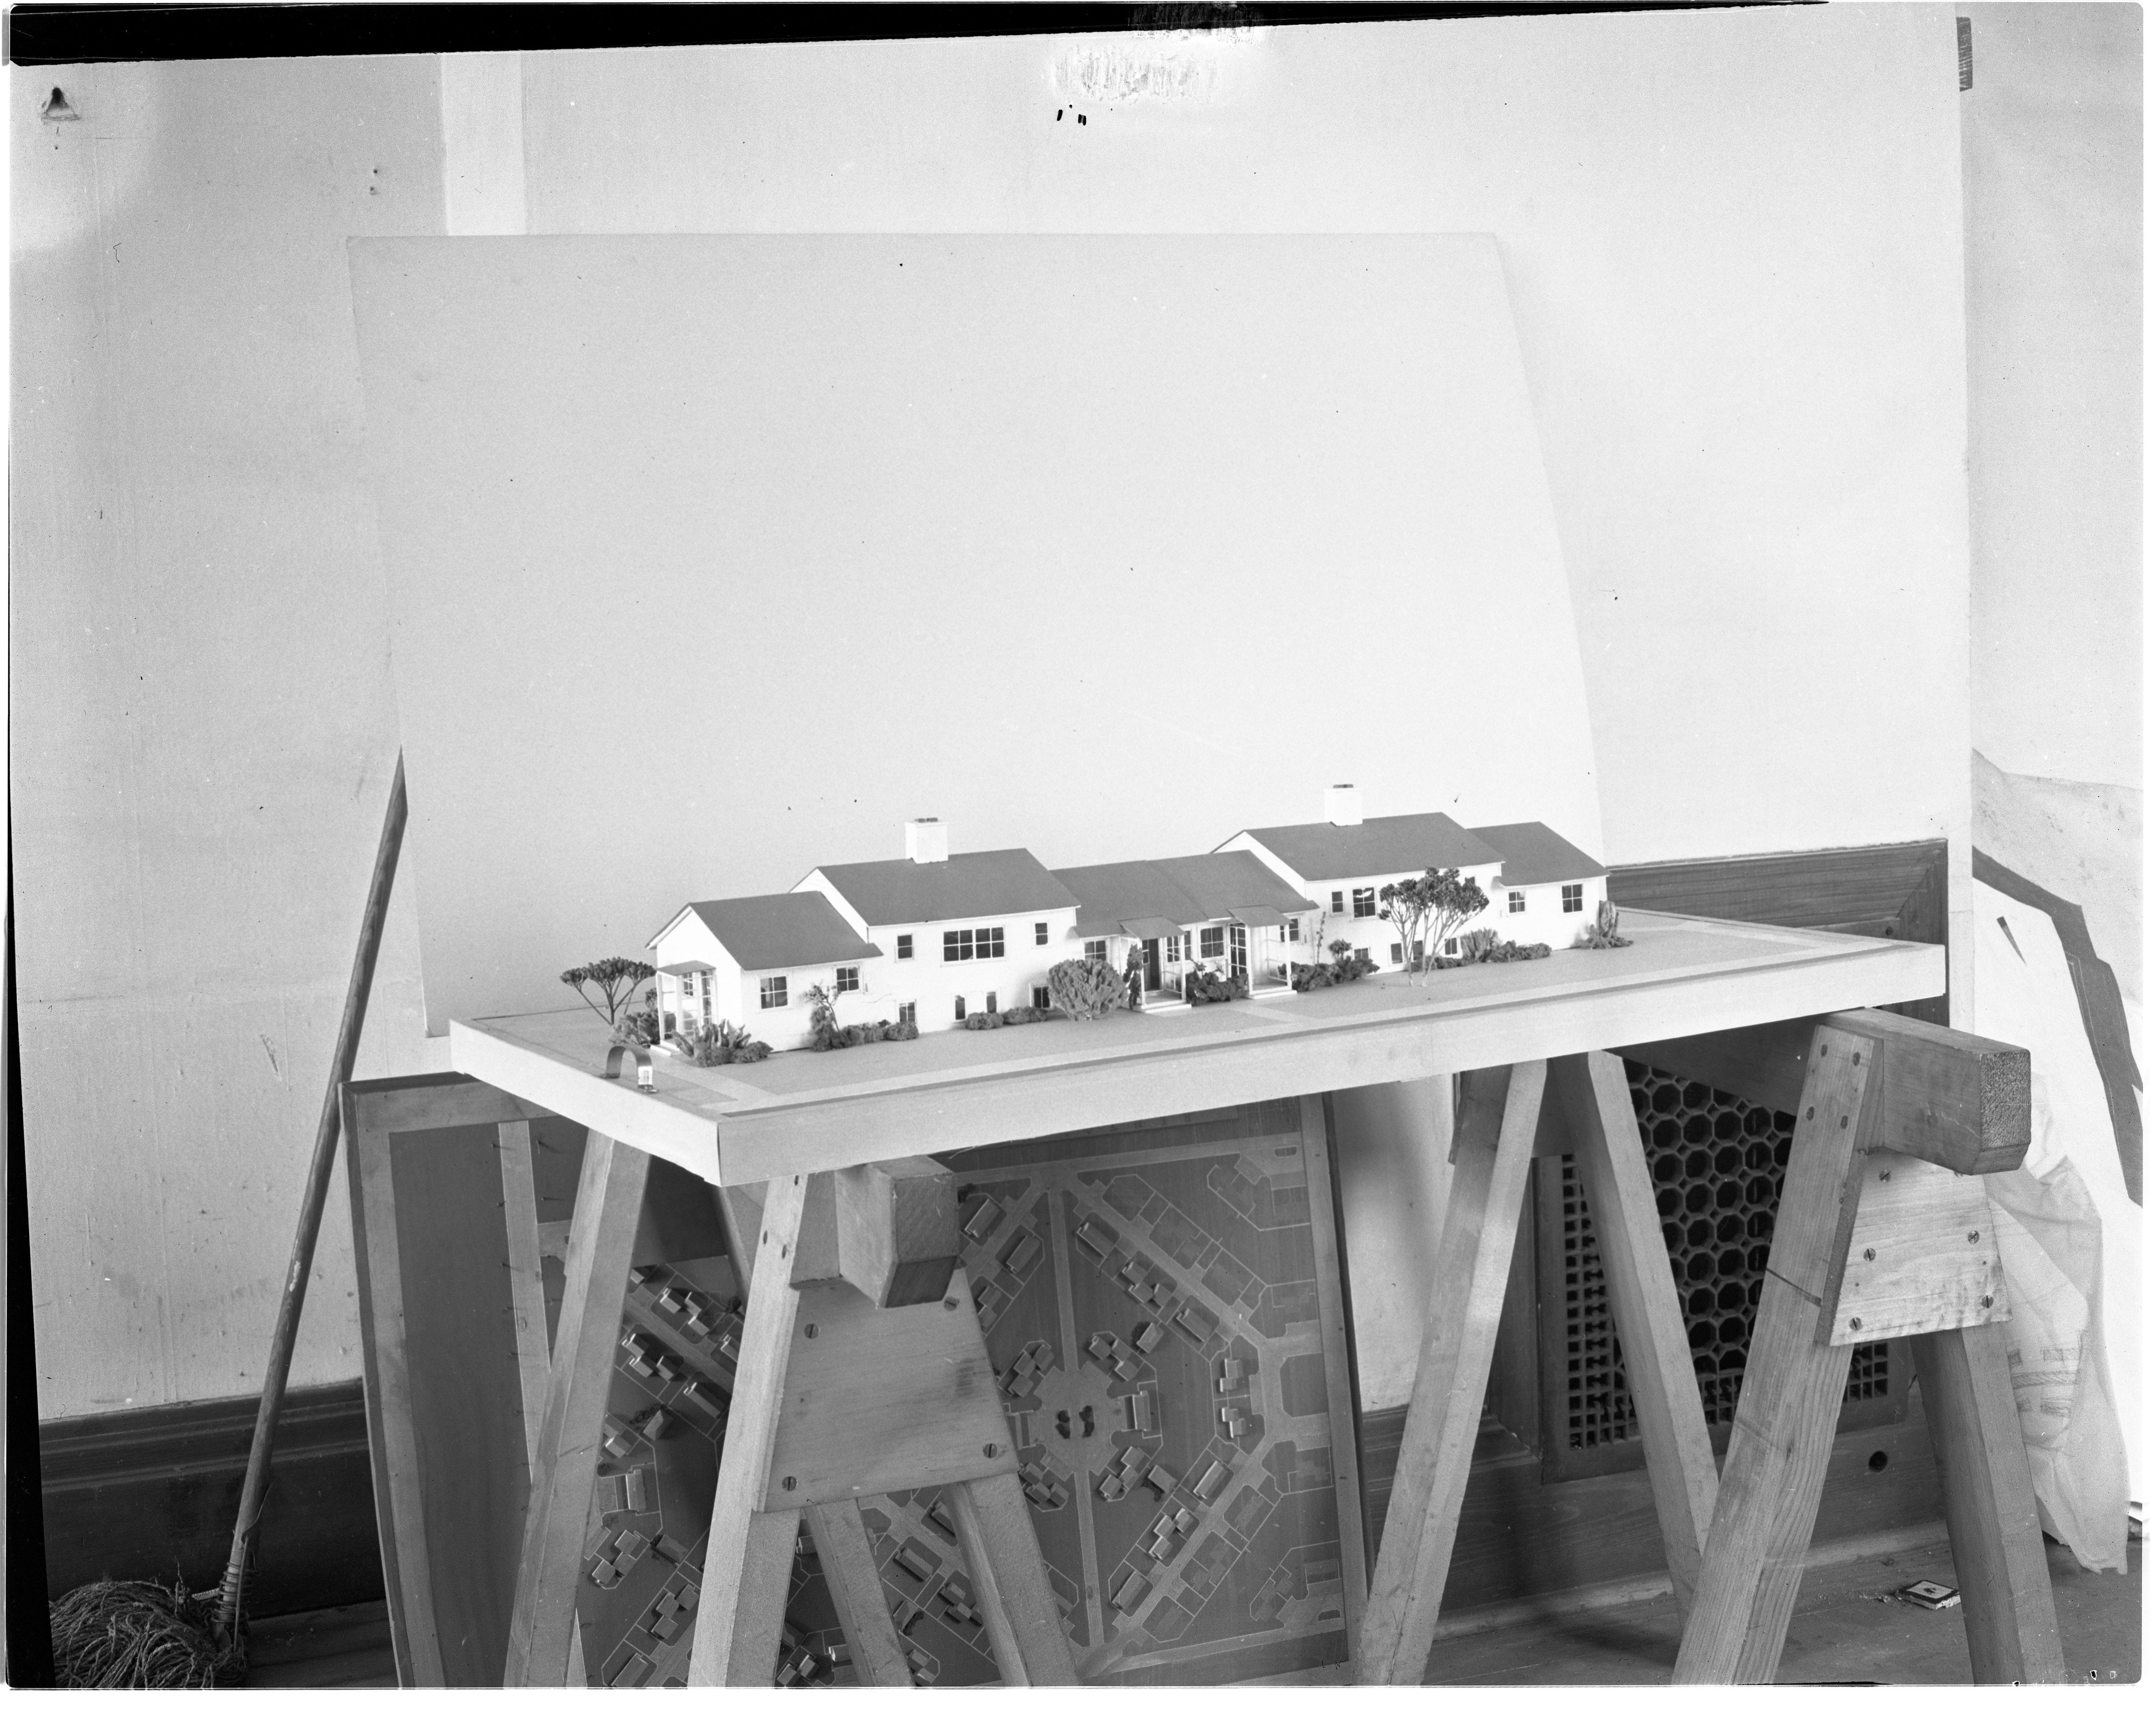 Model of Pittsfield Village, September 1943 image